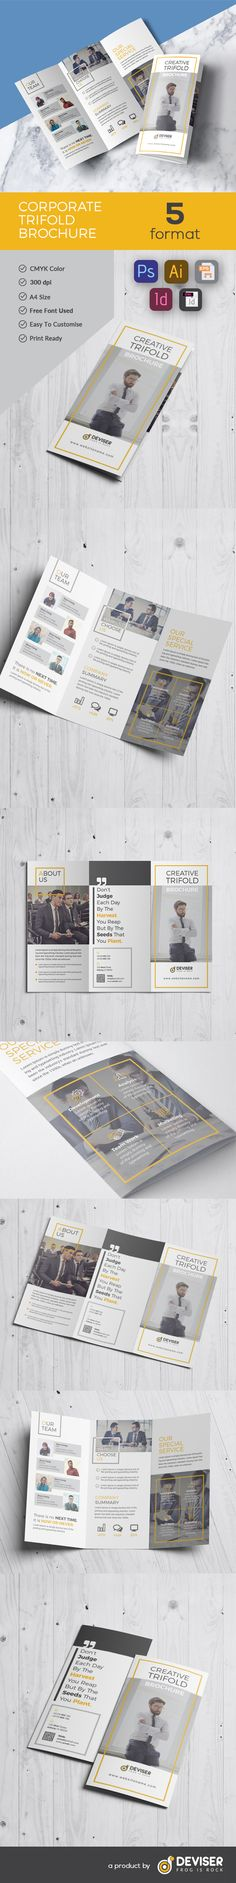 """Check out my @Behance project: """"Tri-Fold Brochure"""" https://www.behance.net/gallery/51155917/Tri-Fold-Brochure"""